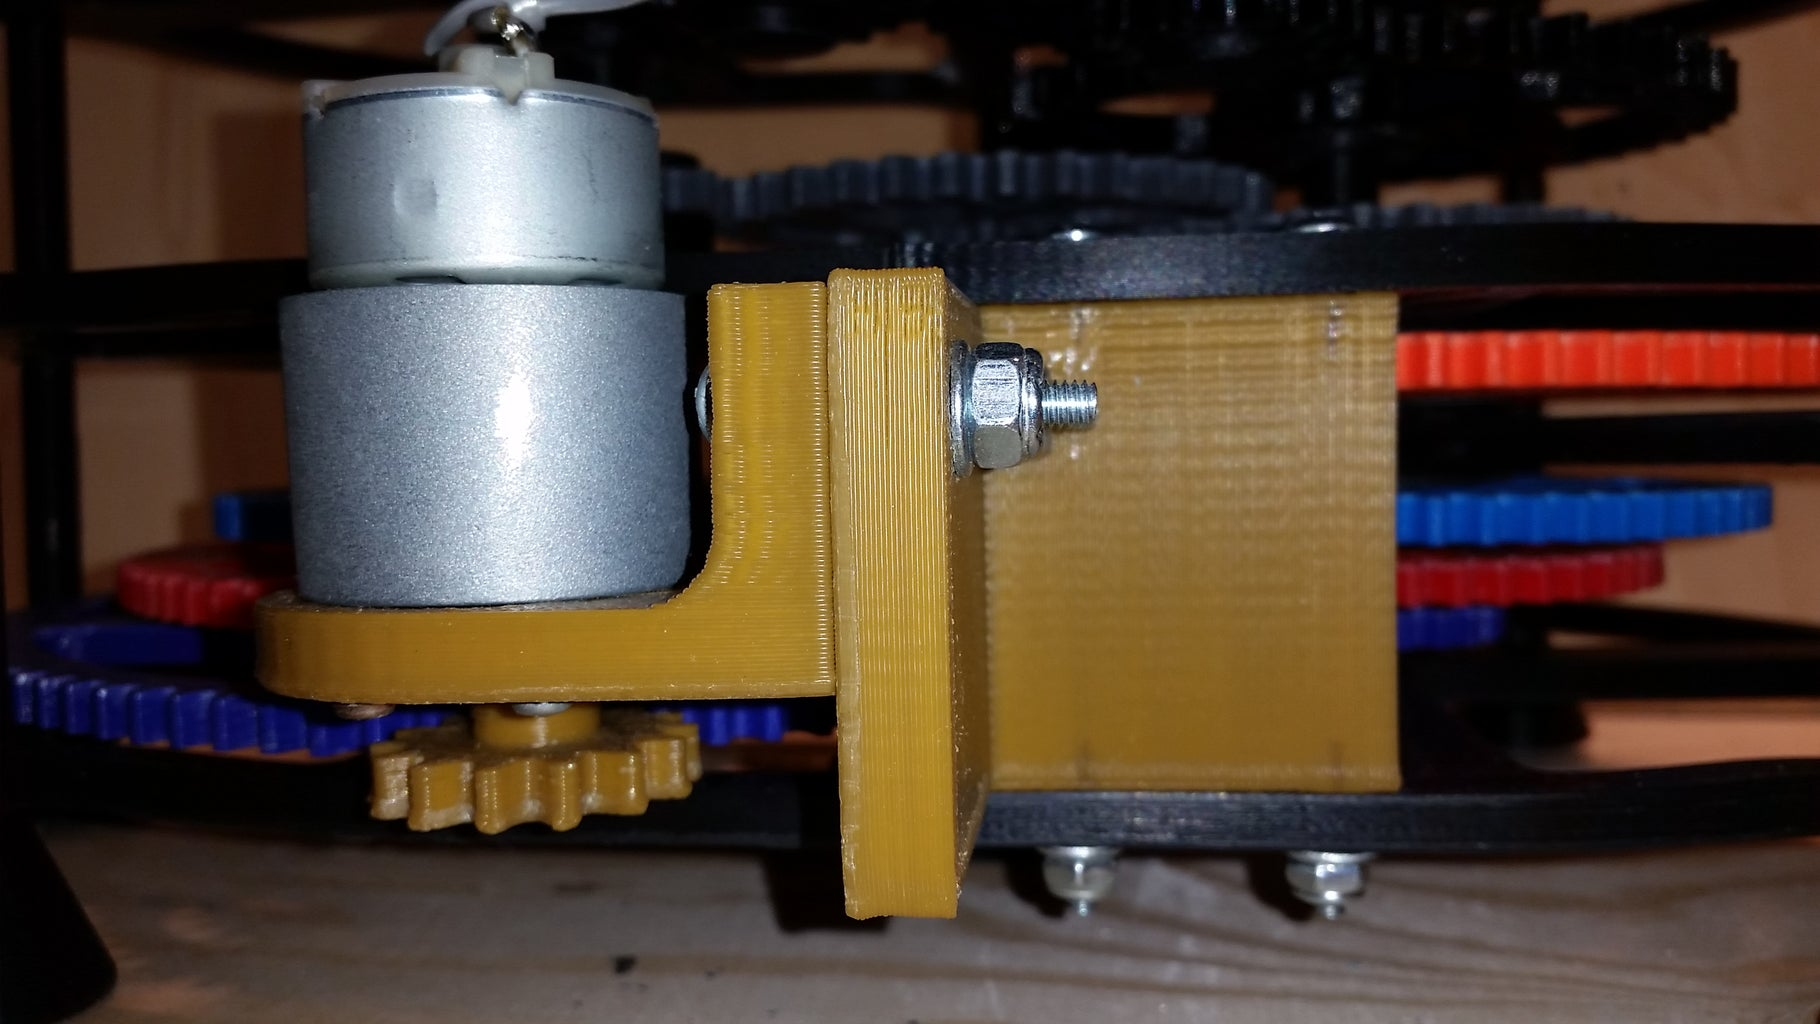 Mount Motor, Brackets and Switch